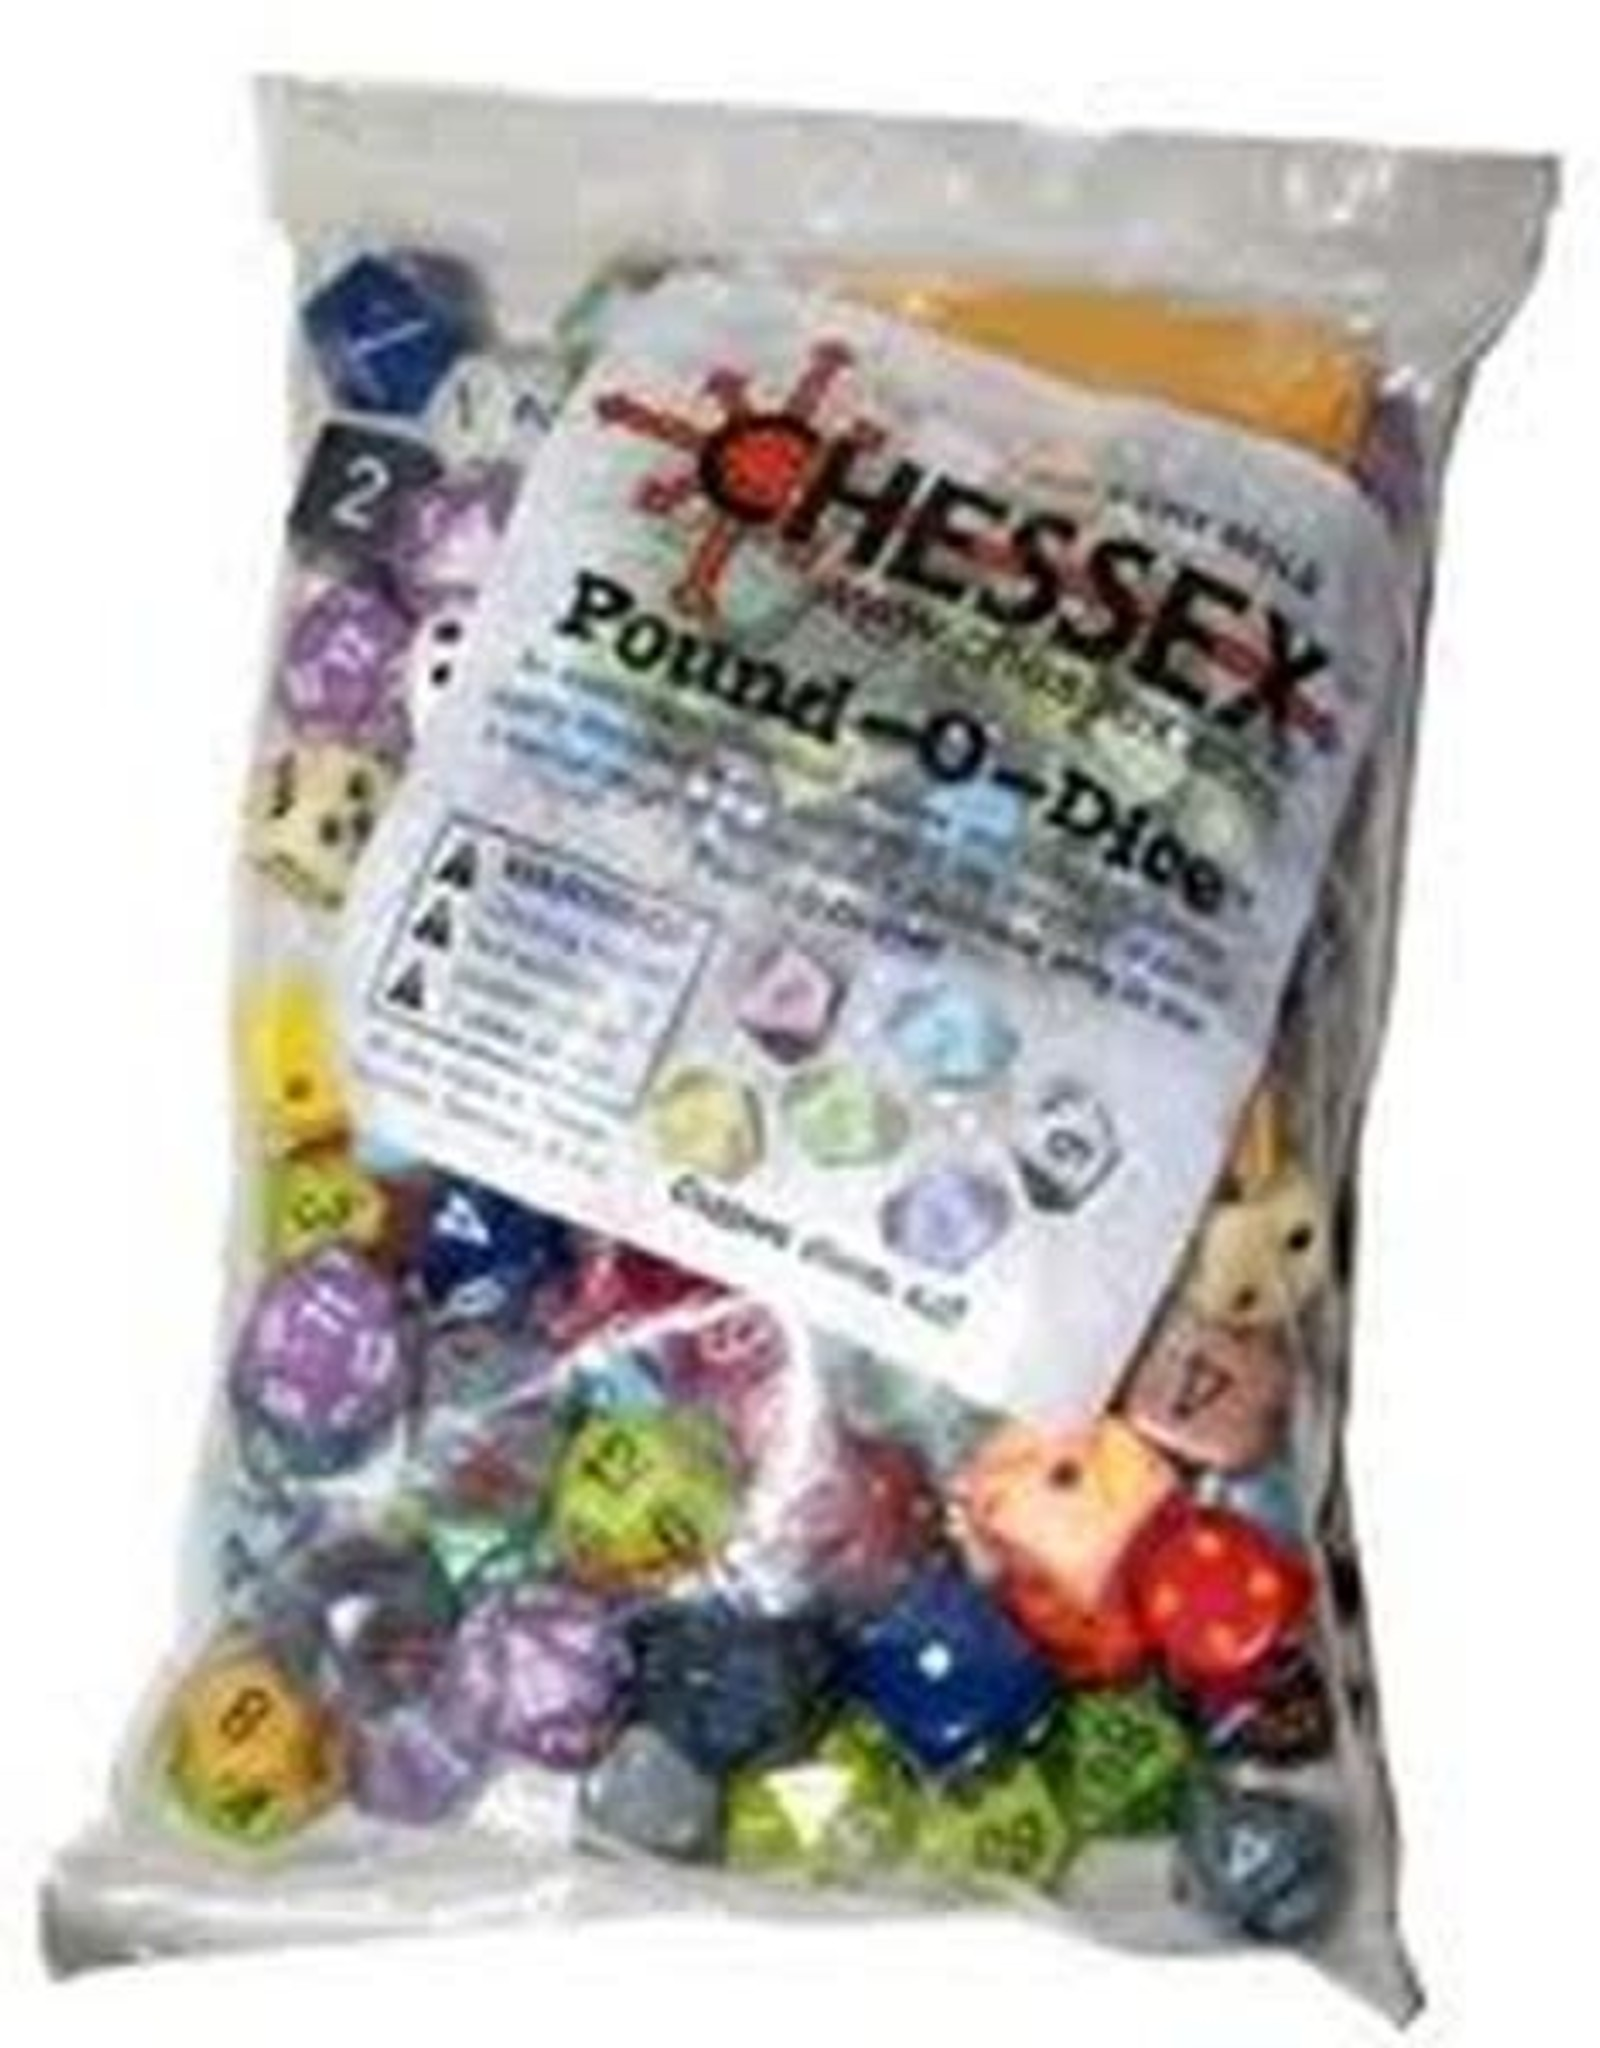 Chessex Pound O' Dice